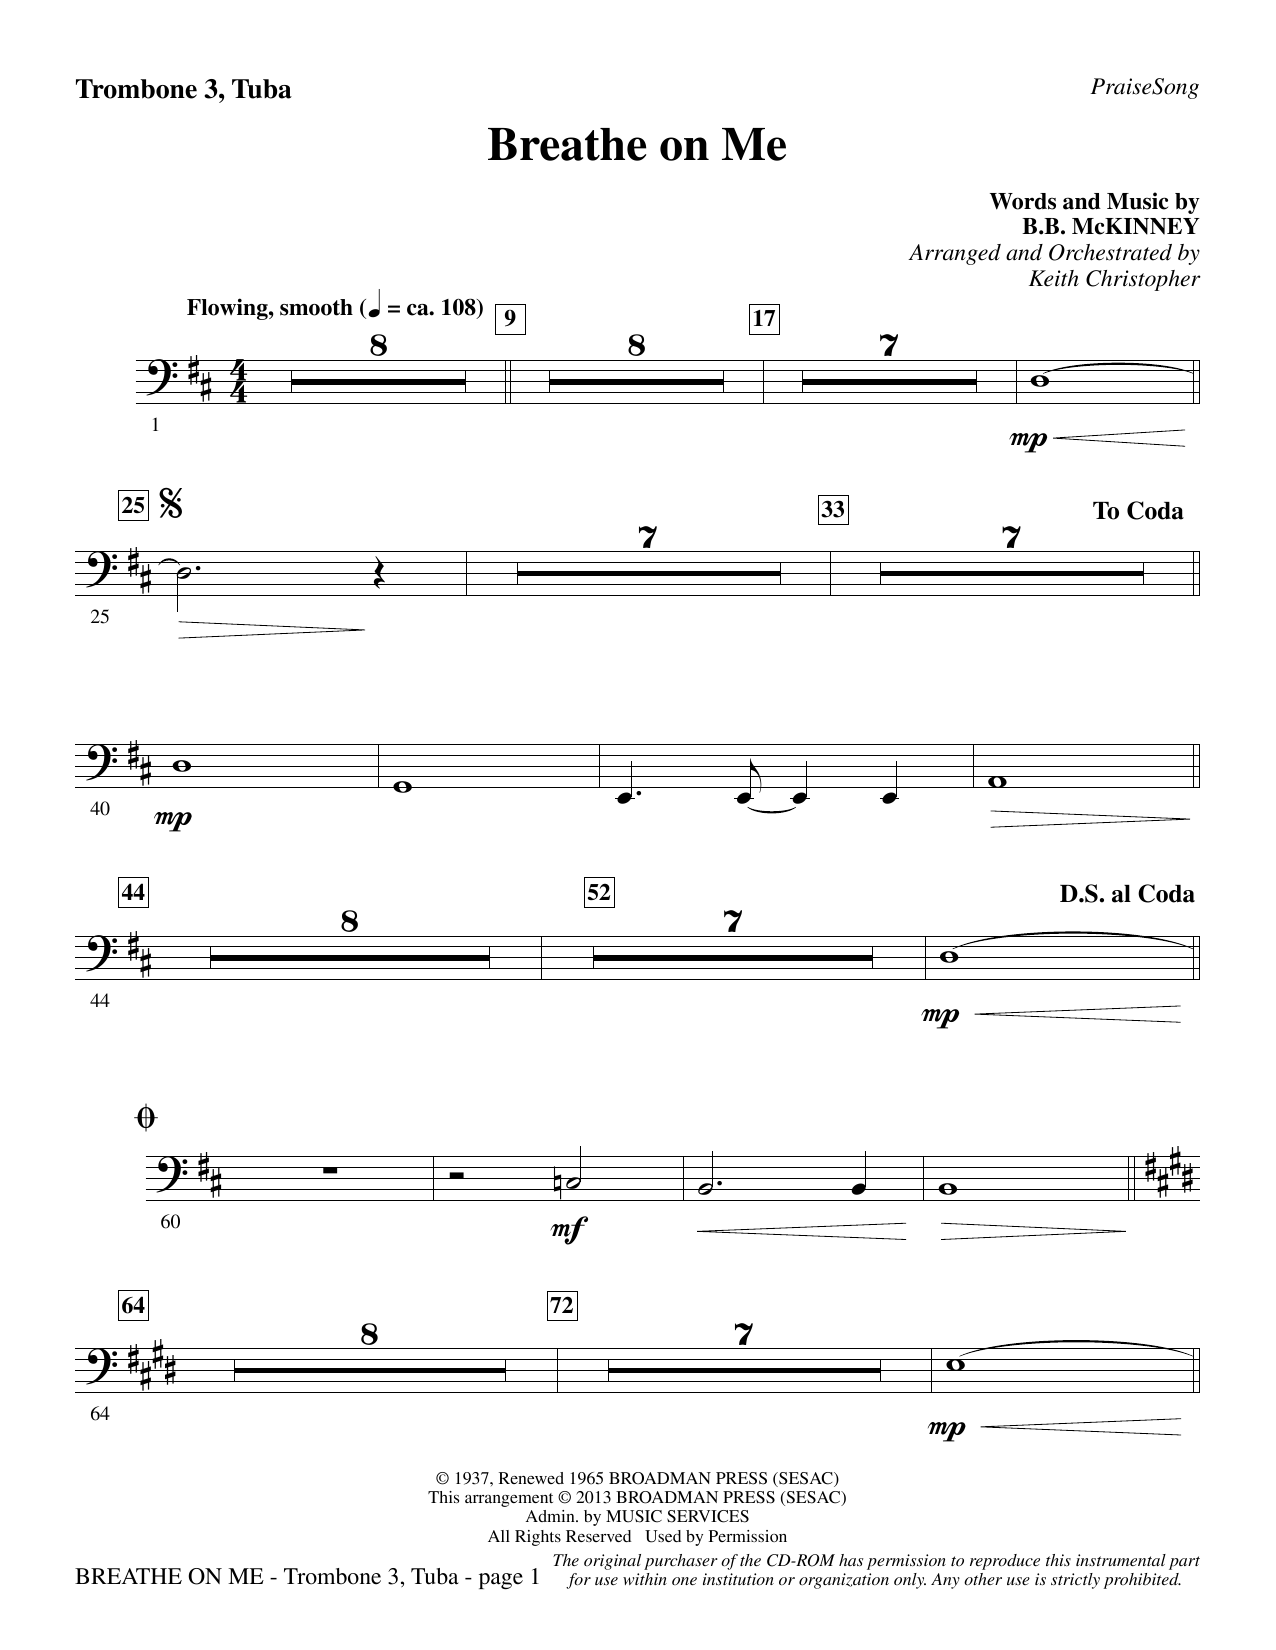 Breathe on Me - Trombone 3/Tuba Sheet Music